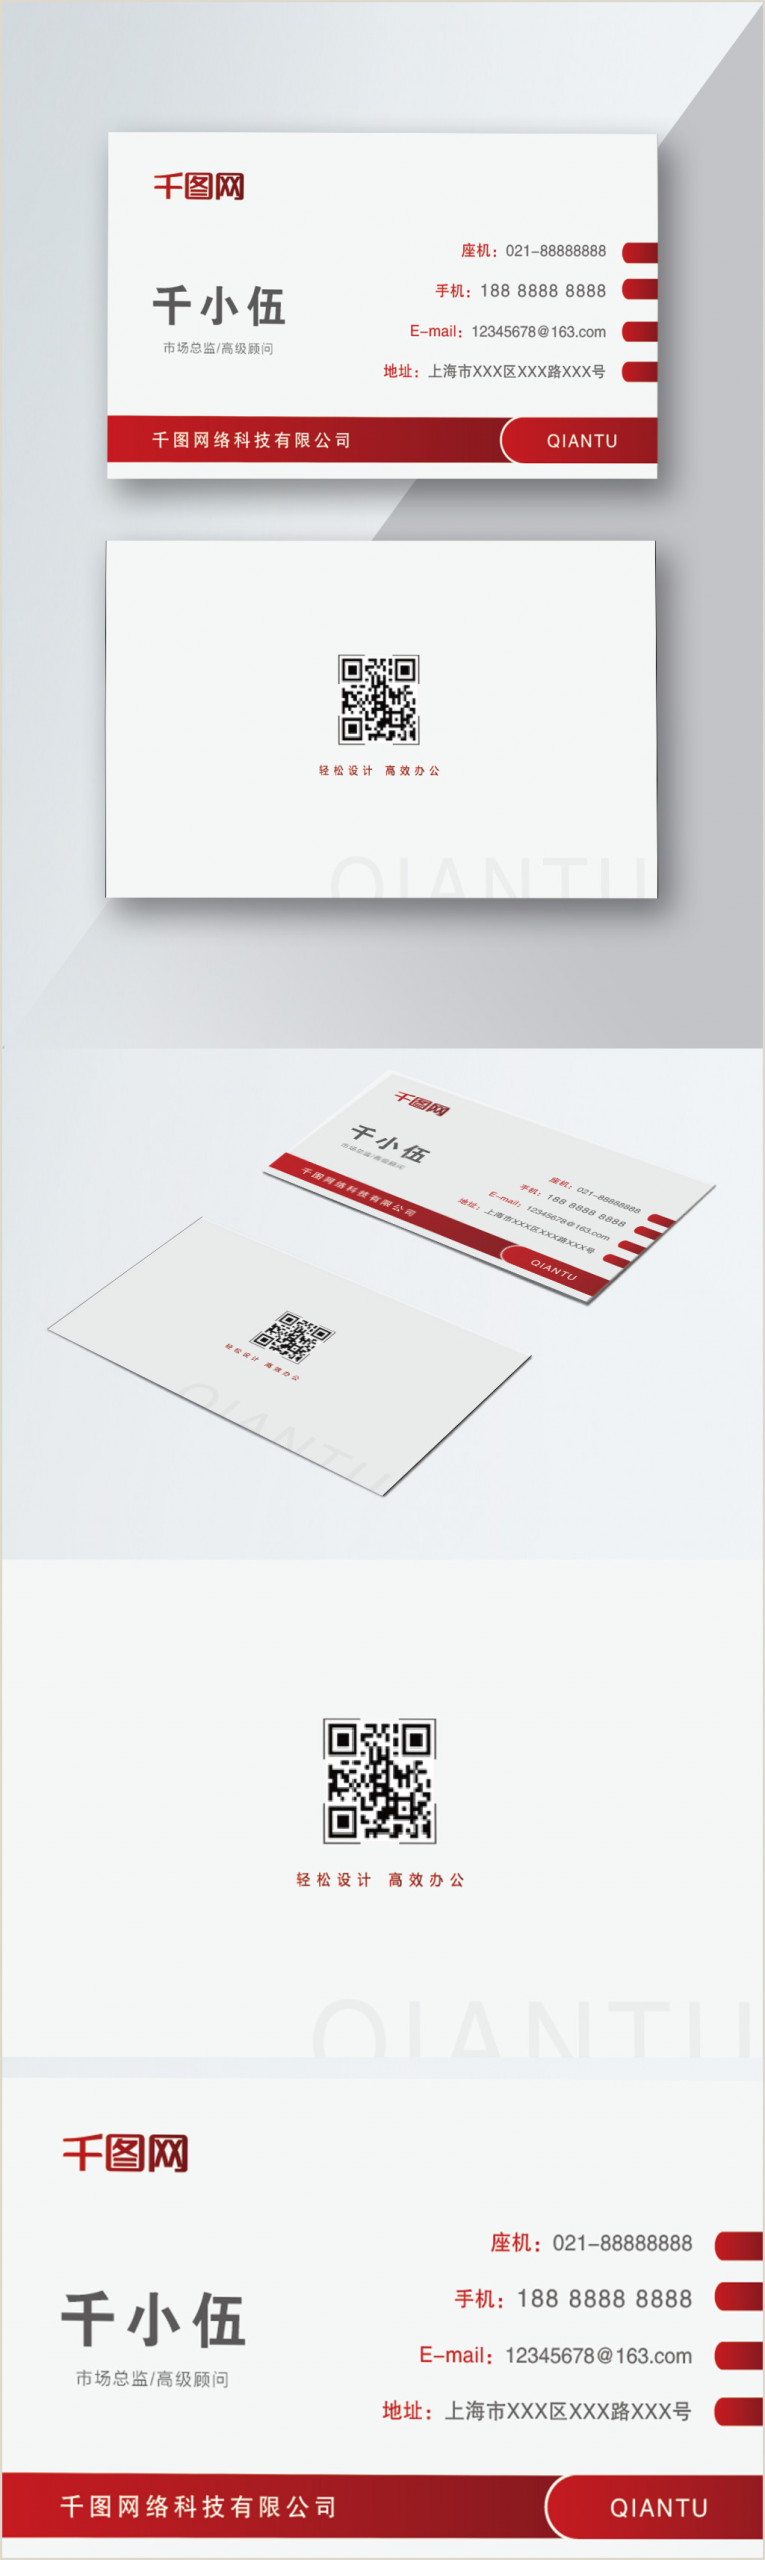 Business Card Model Black And White Business Senior Business Card With Qr Code